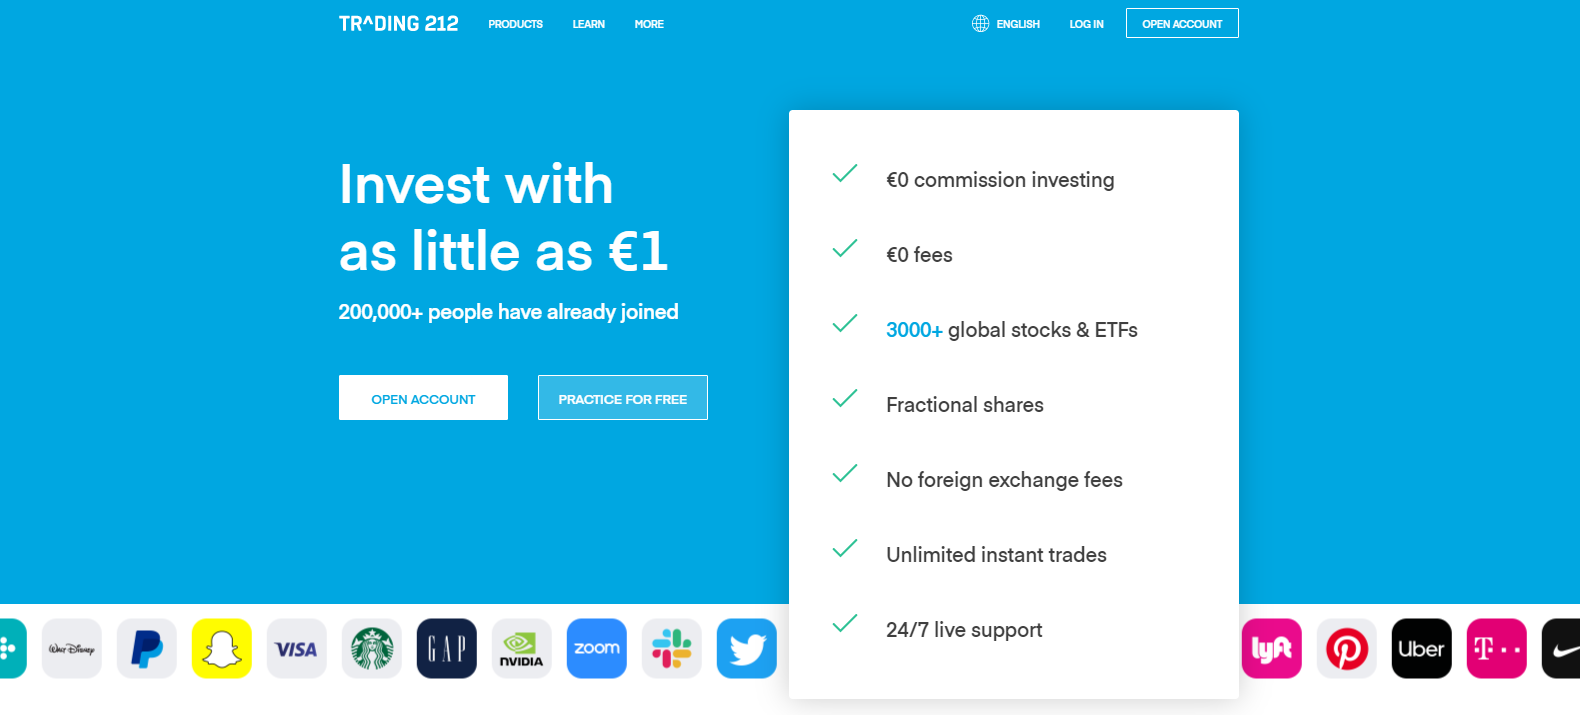 Trading 212 Homepage